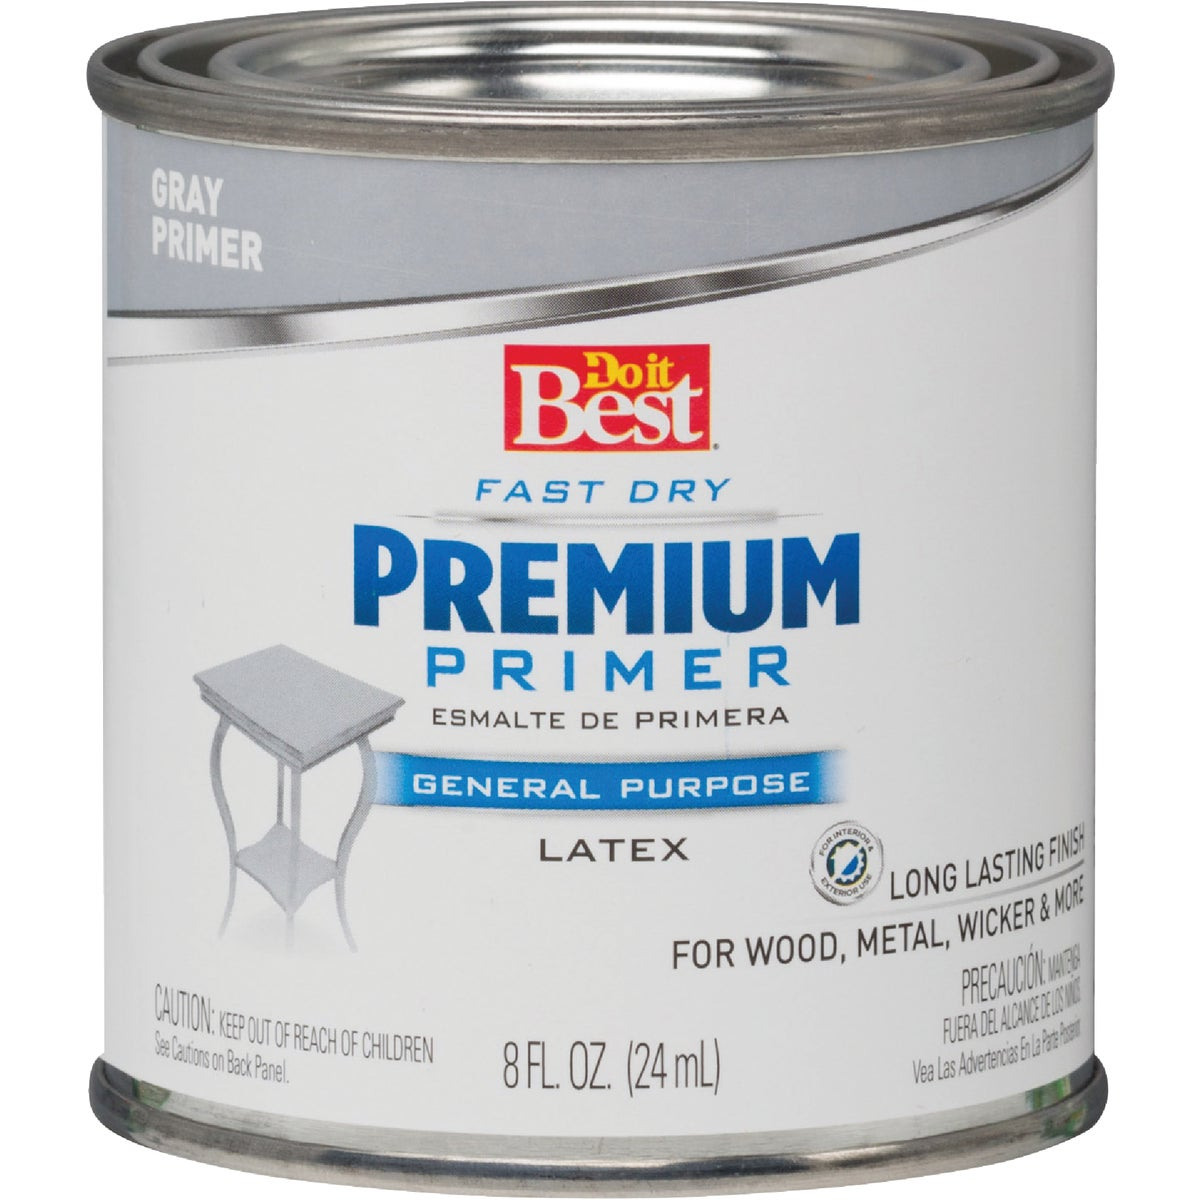 GRAY LATEX PRIMER - 2131 by Rustoleum